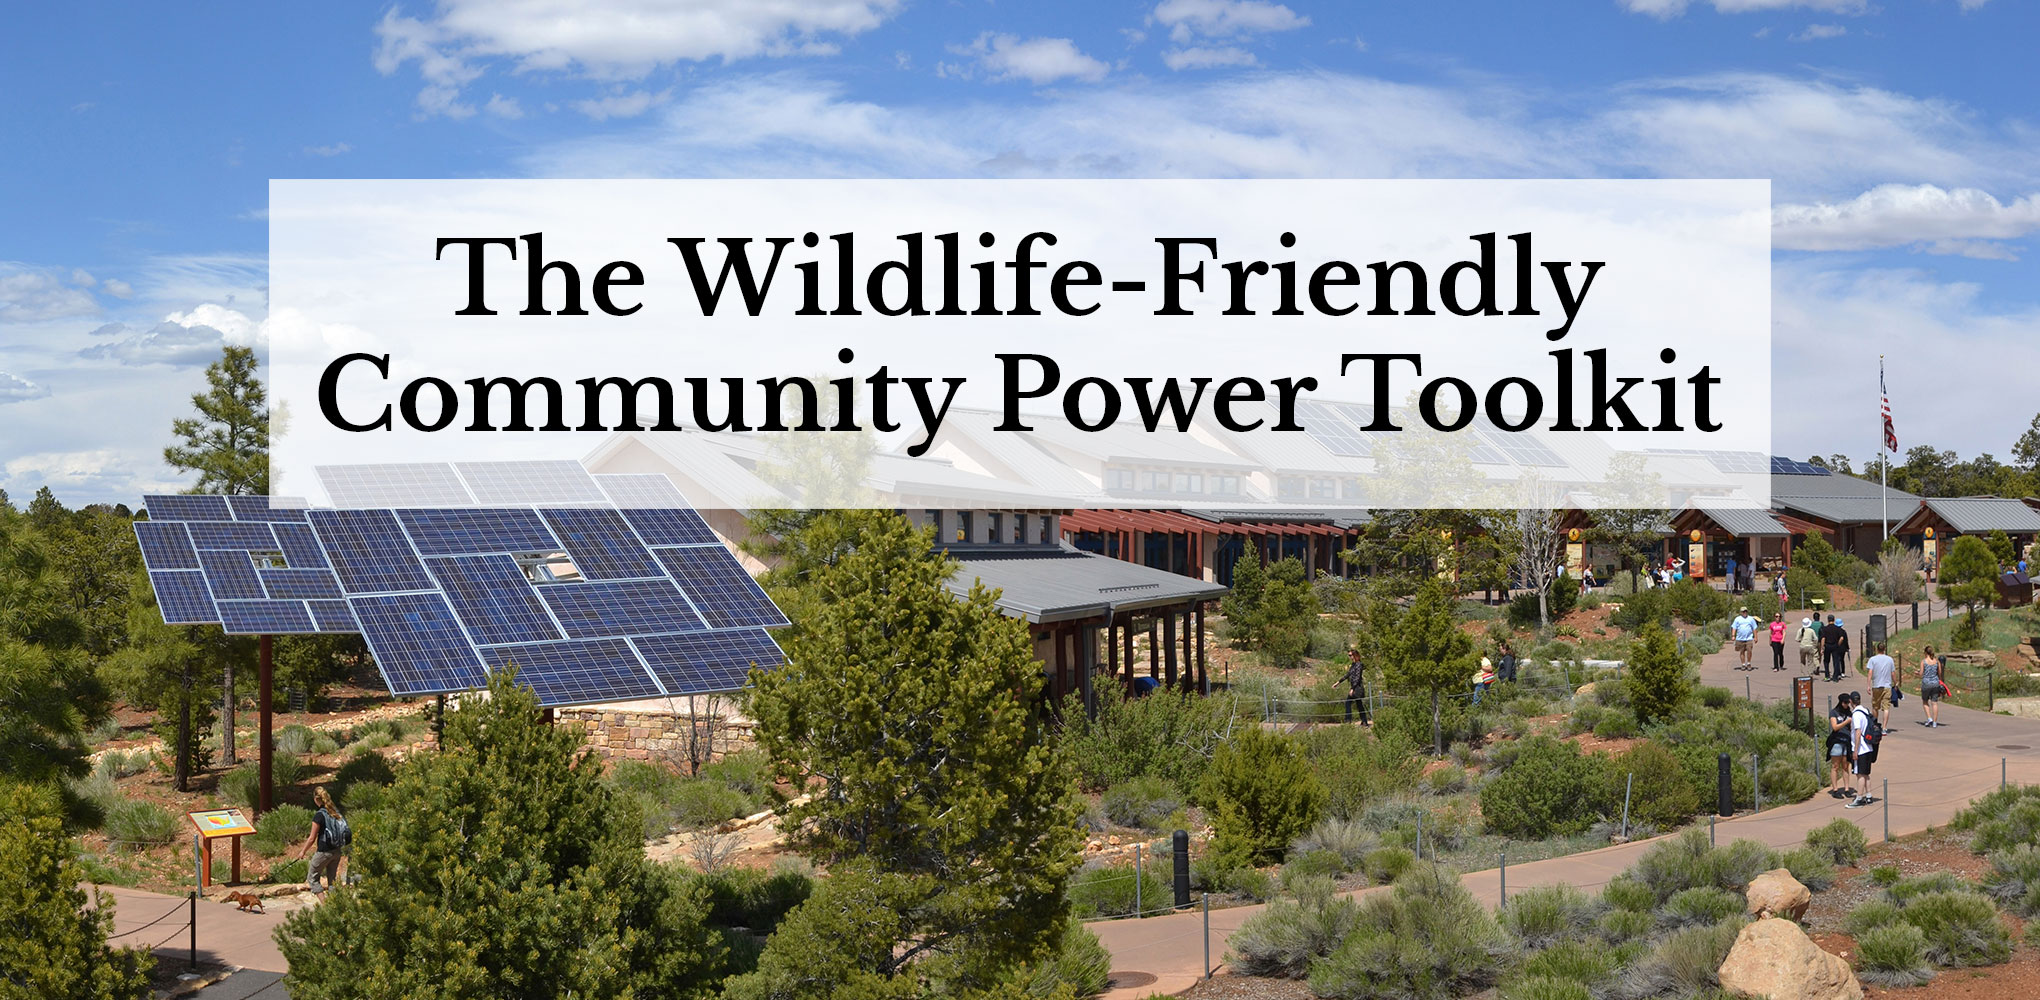 The Wildlife-Friendly Community Power Toolkit